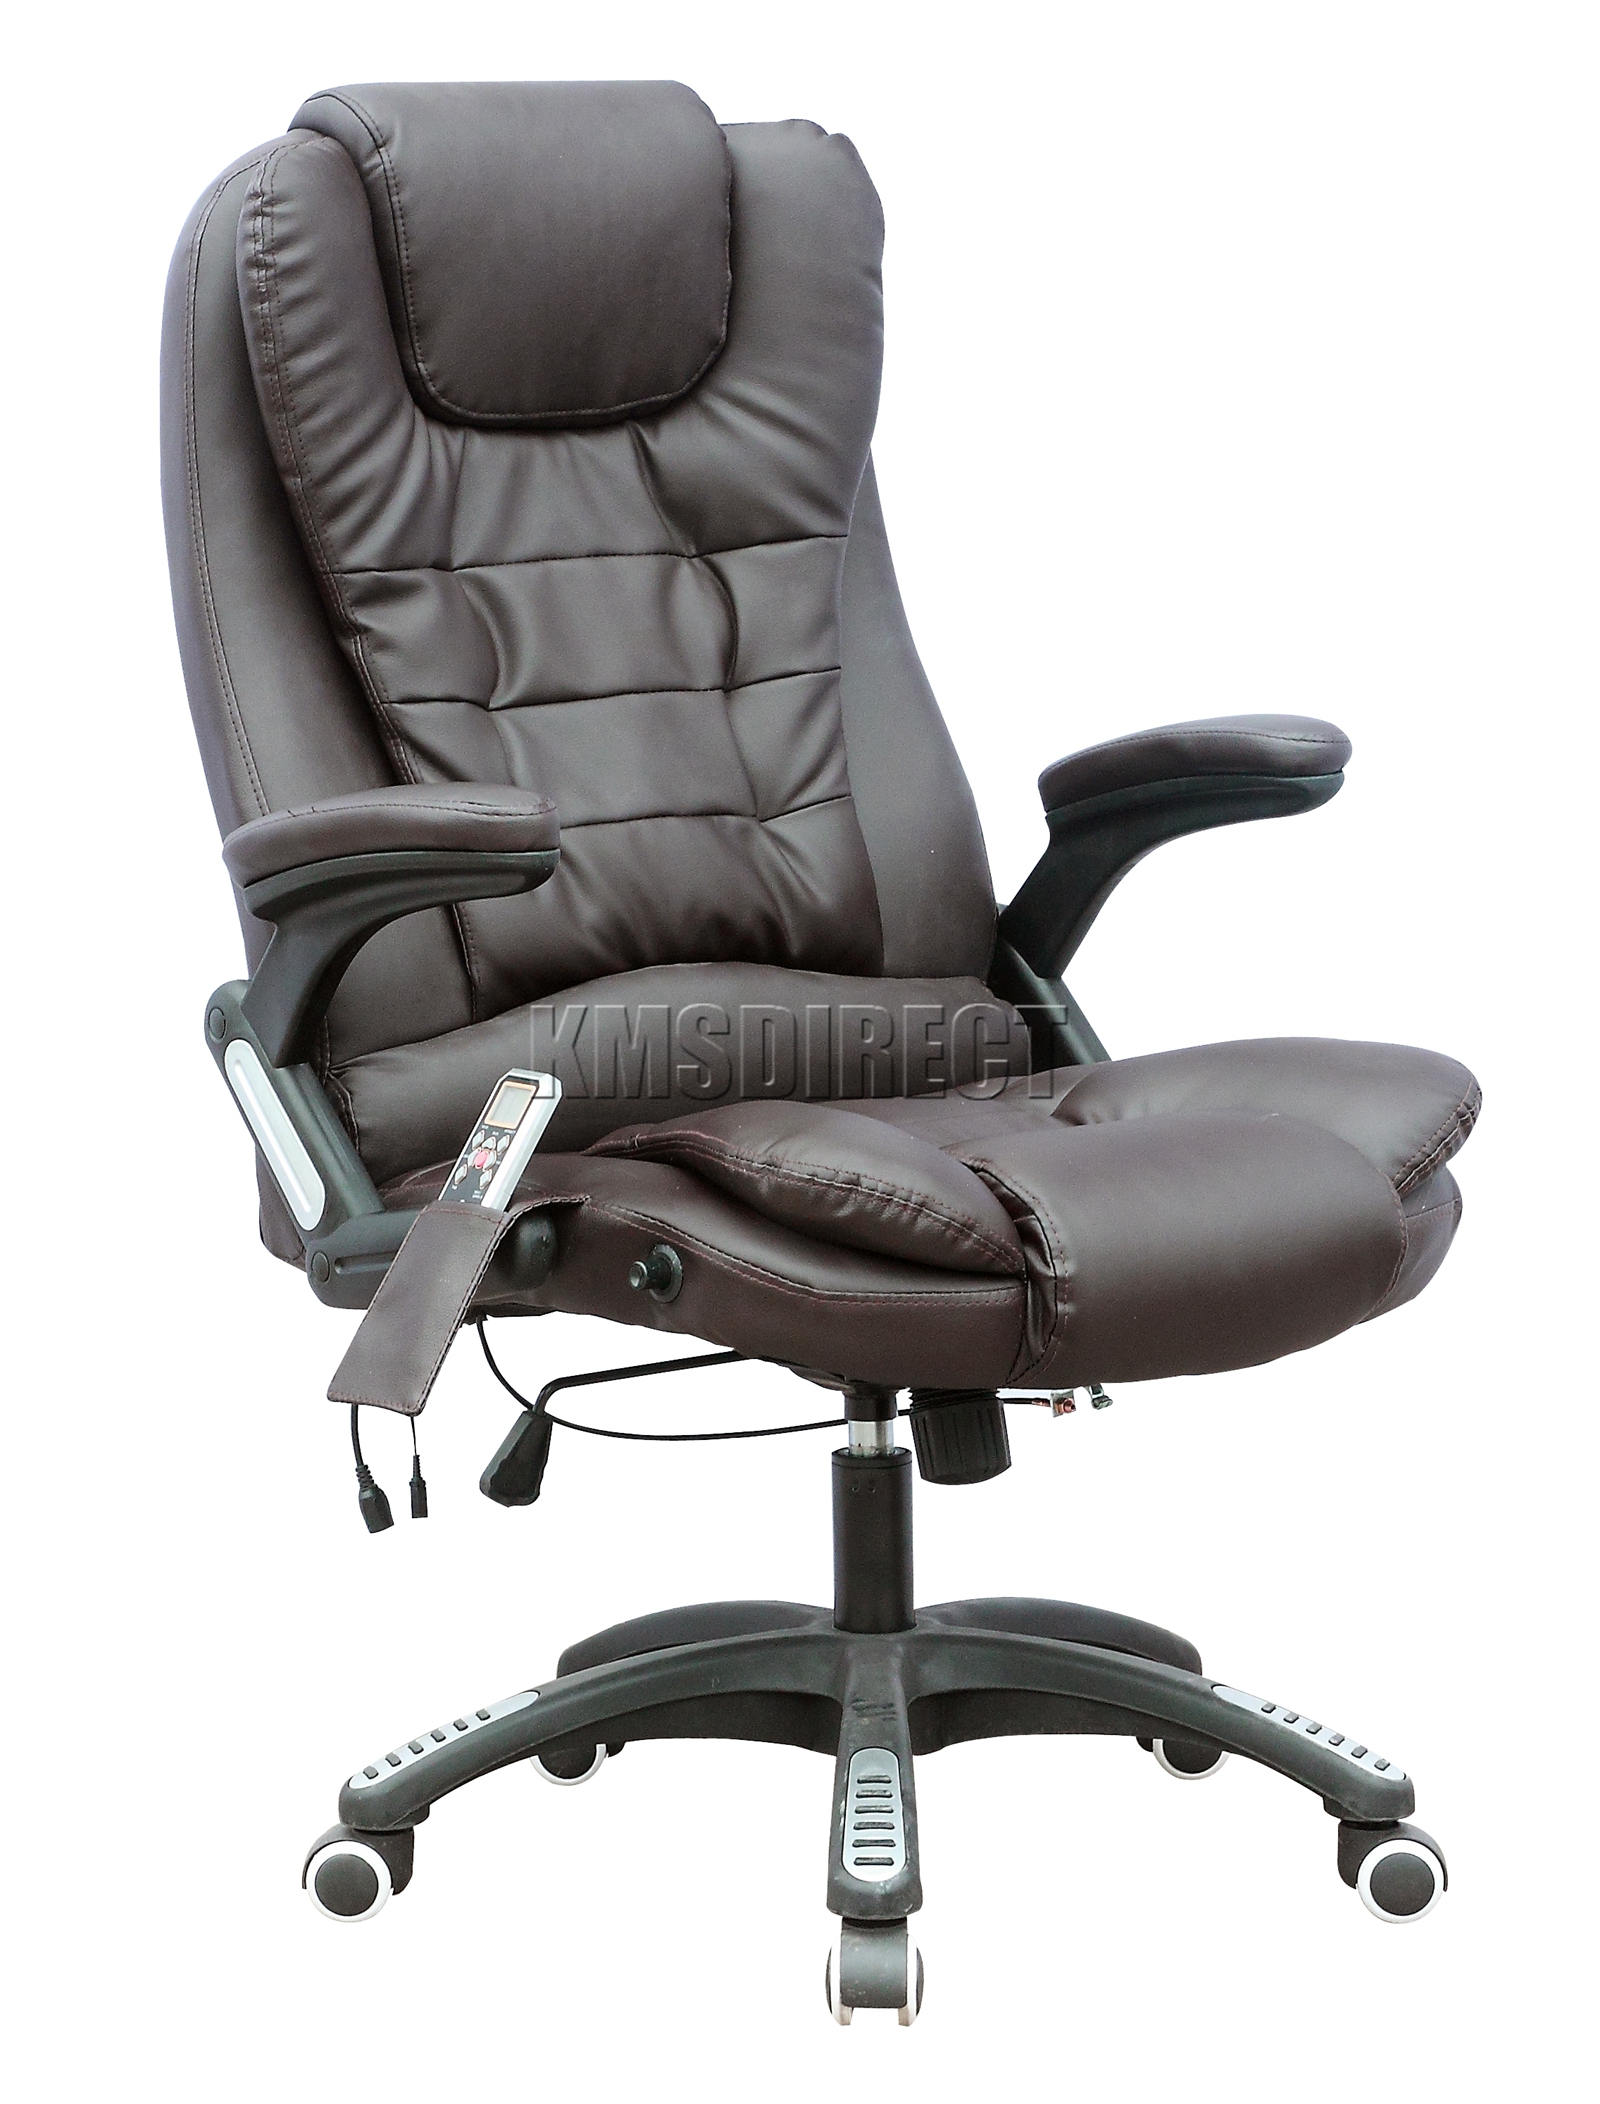 Brown Computer Chair Foxhunter 8025 Leather 6 Point Massage Office Computer